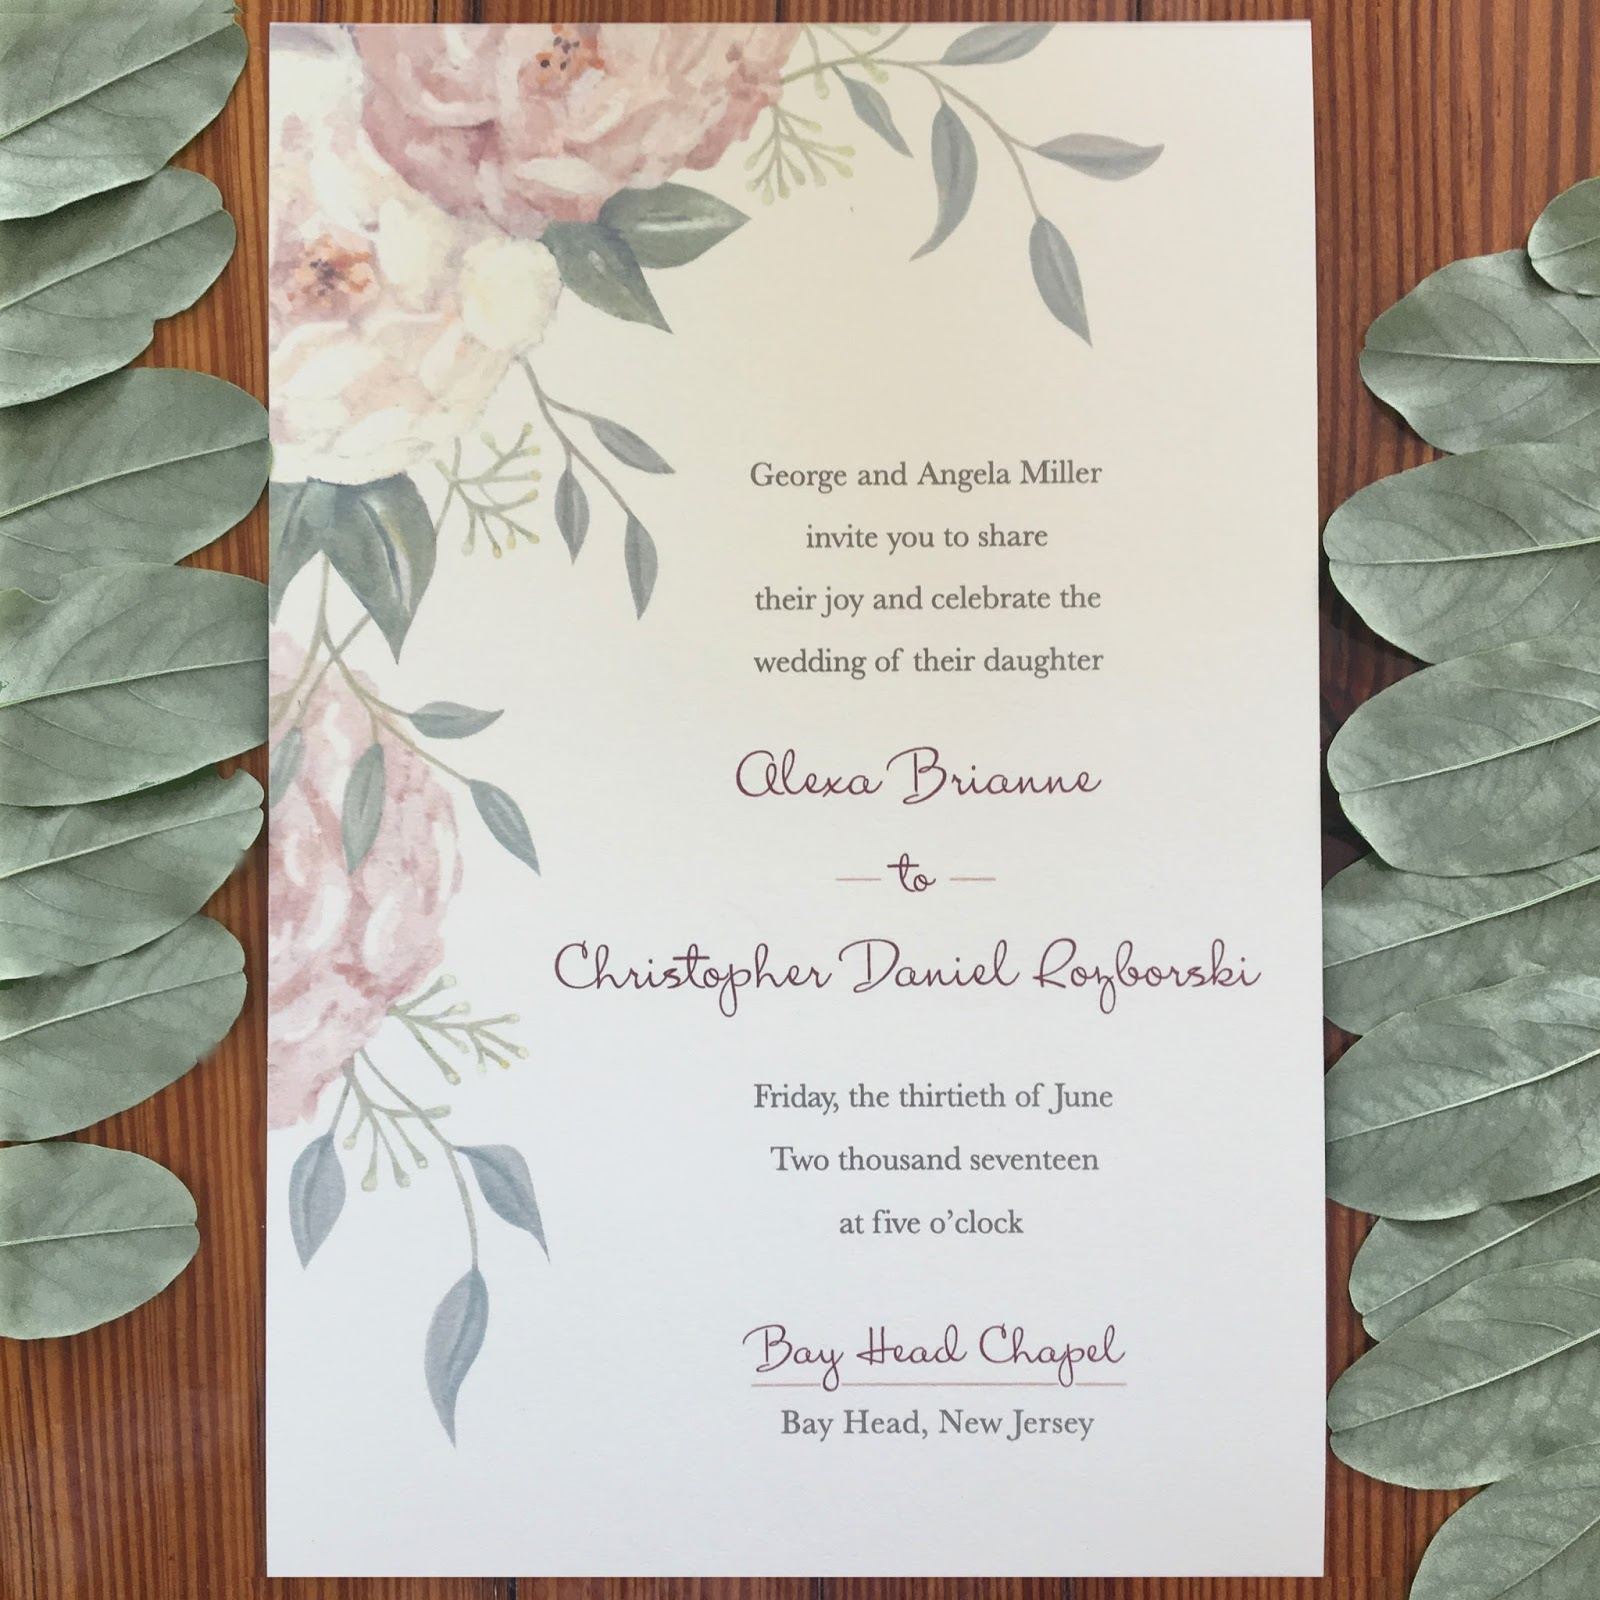 Invitations ink social design studio peonies eucalyptus bouquet alexa and chriss wedding invitation showcases watercolor peonies seeded eucalyptus and vines a laurel wreath was also created using these elements stopboris Choice Image